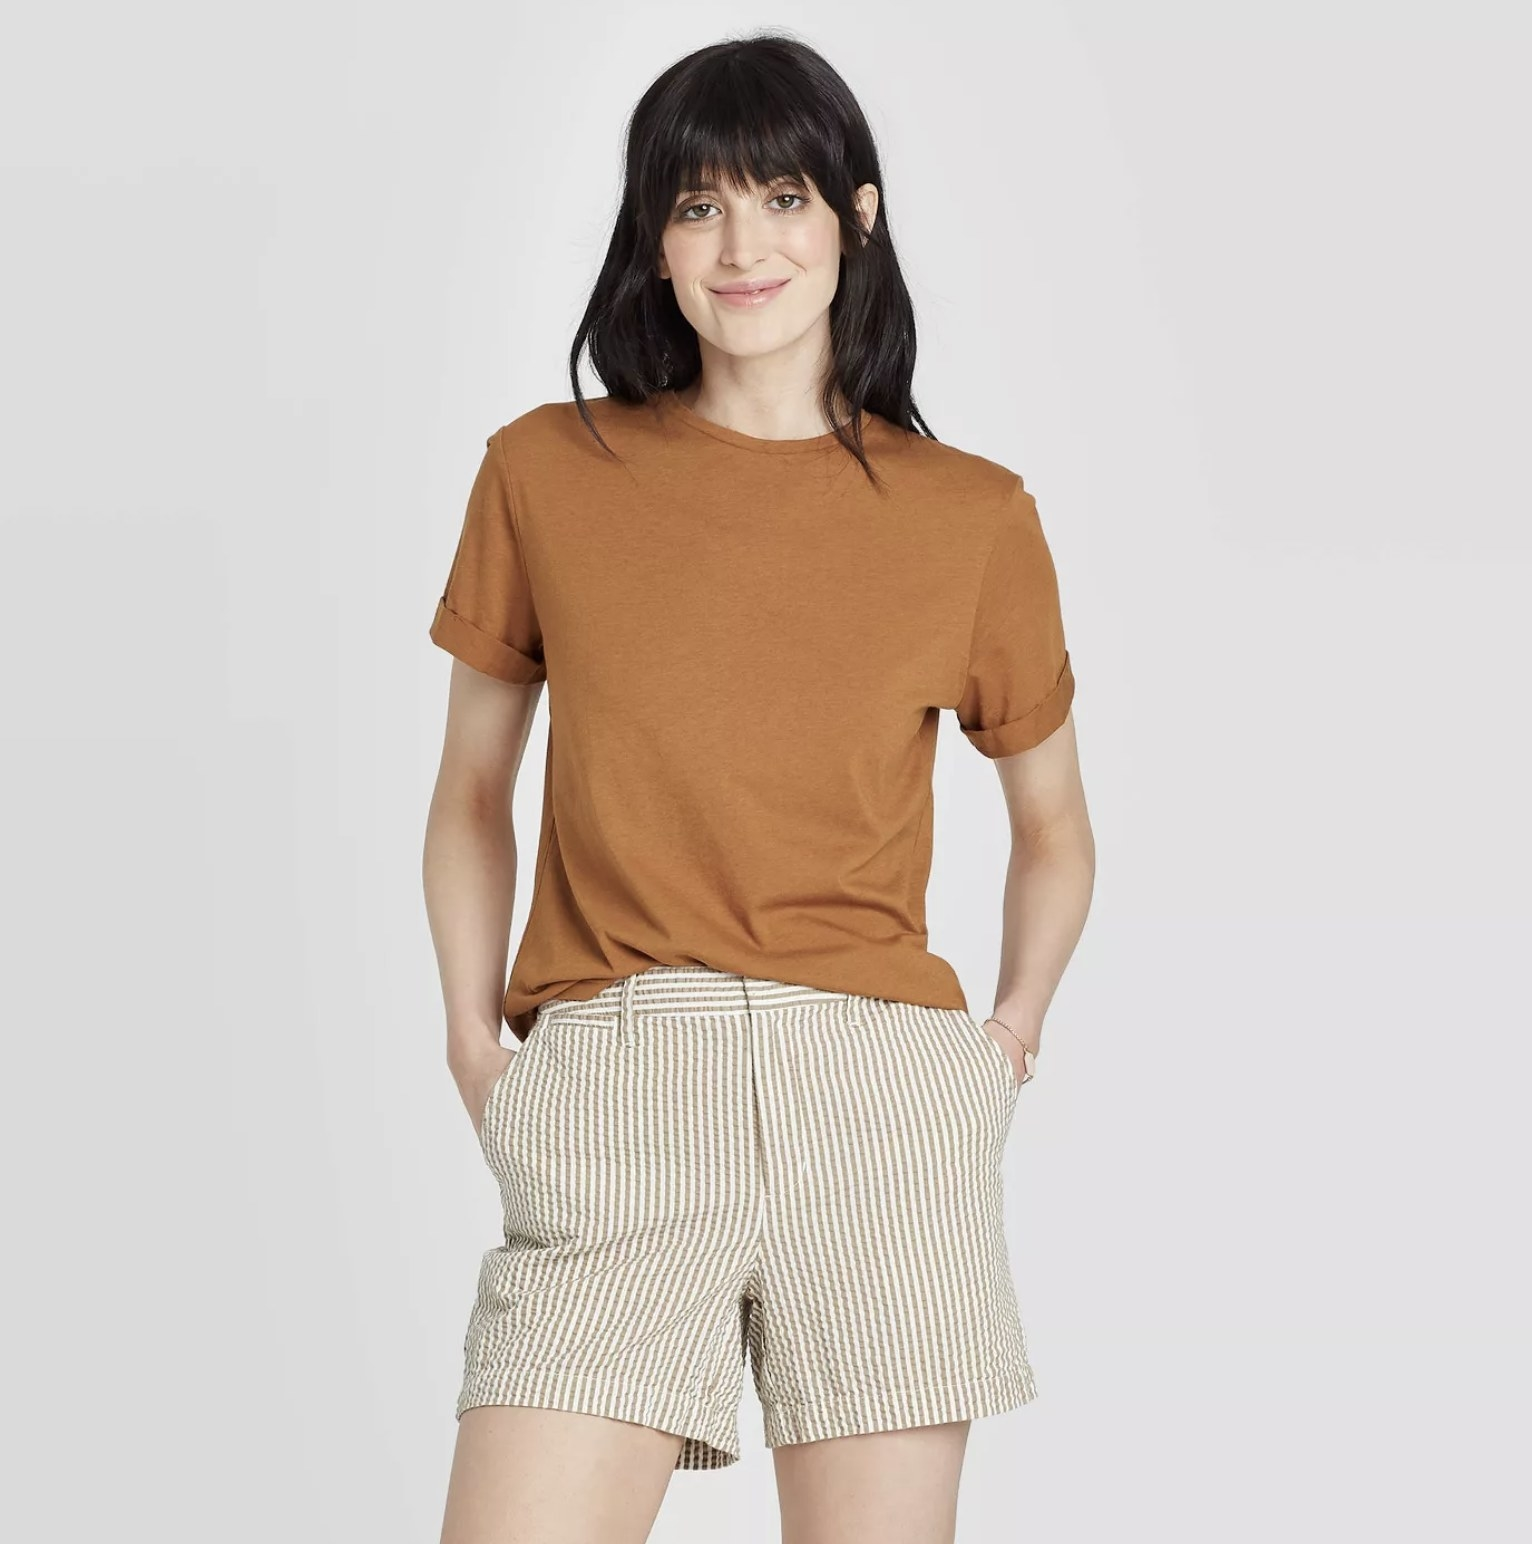 model wearing rust-colored shirt